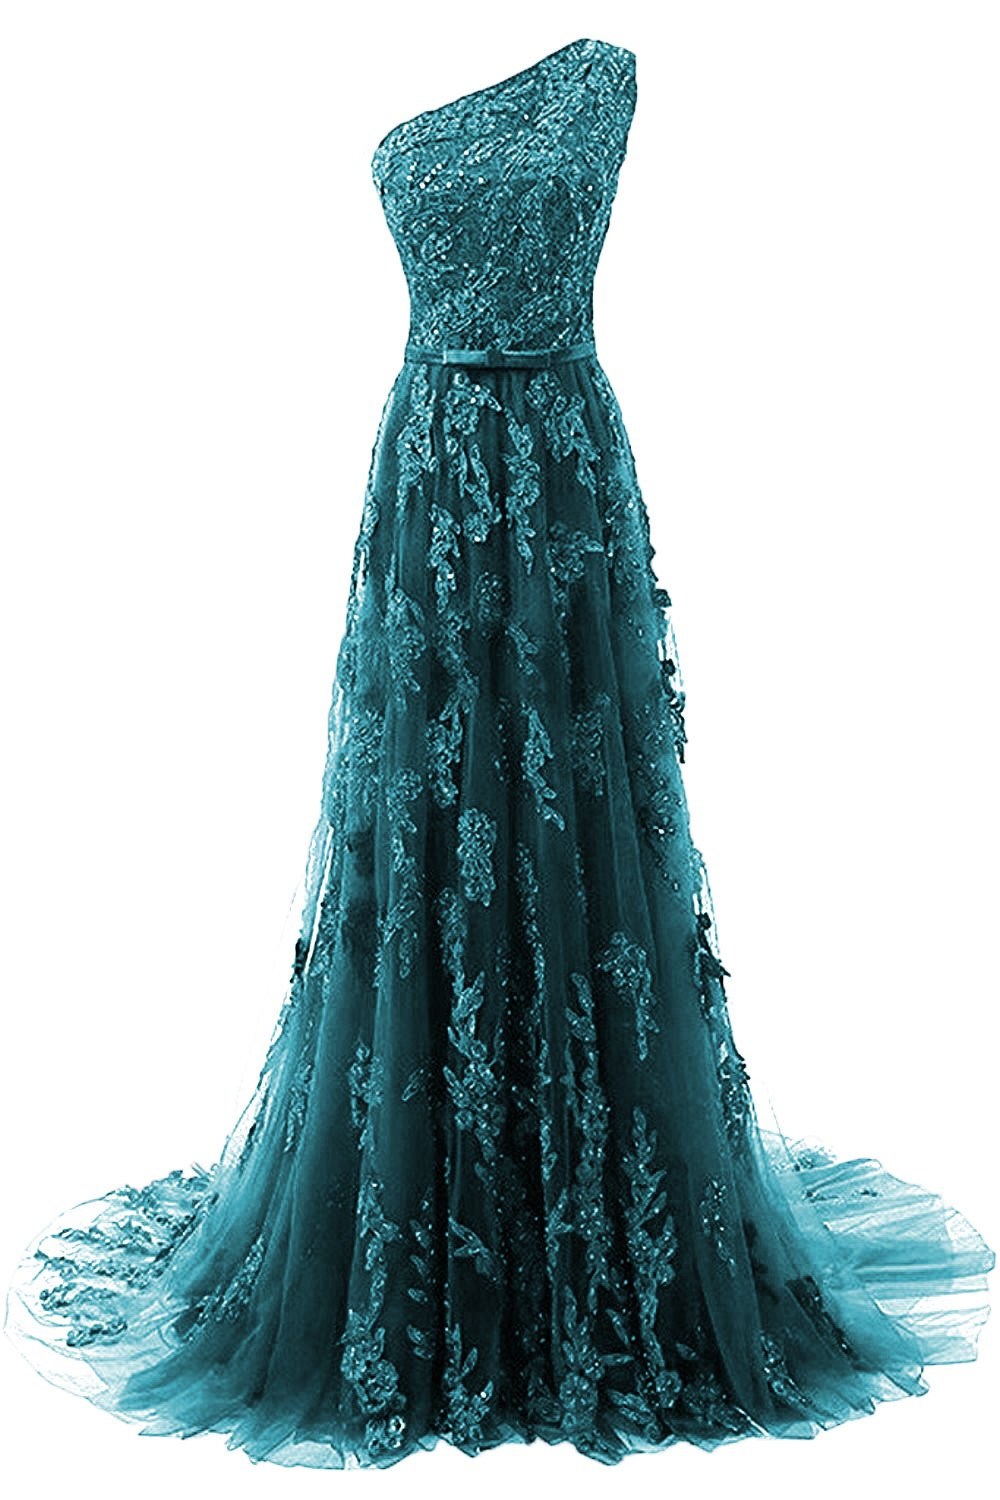 HEIMO Women's One Shoulder Evening Party Gowns Lace Appliques Formal Prom Dresses Long H107 12 Teal